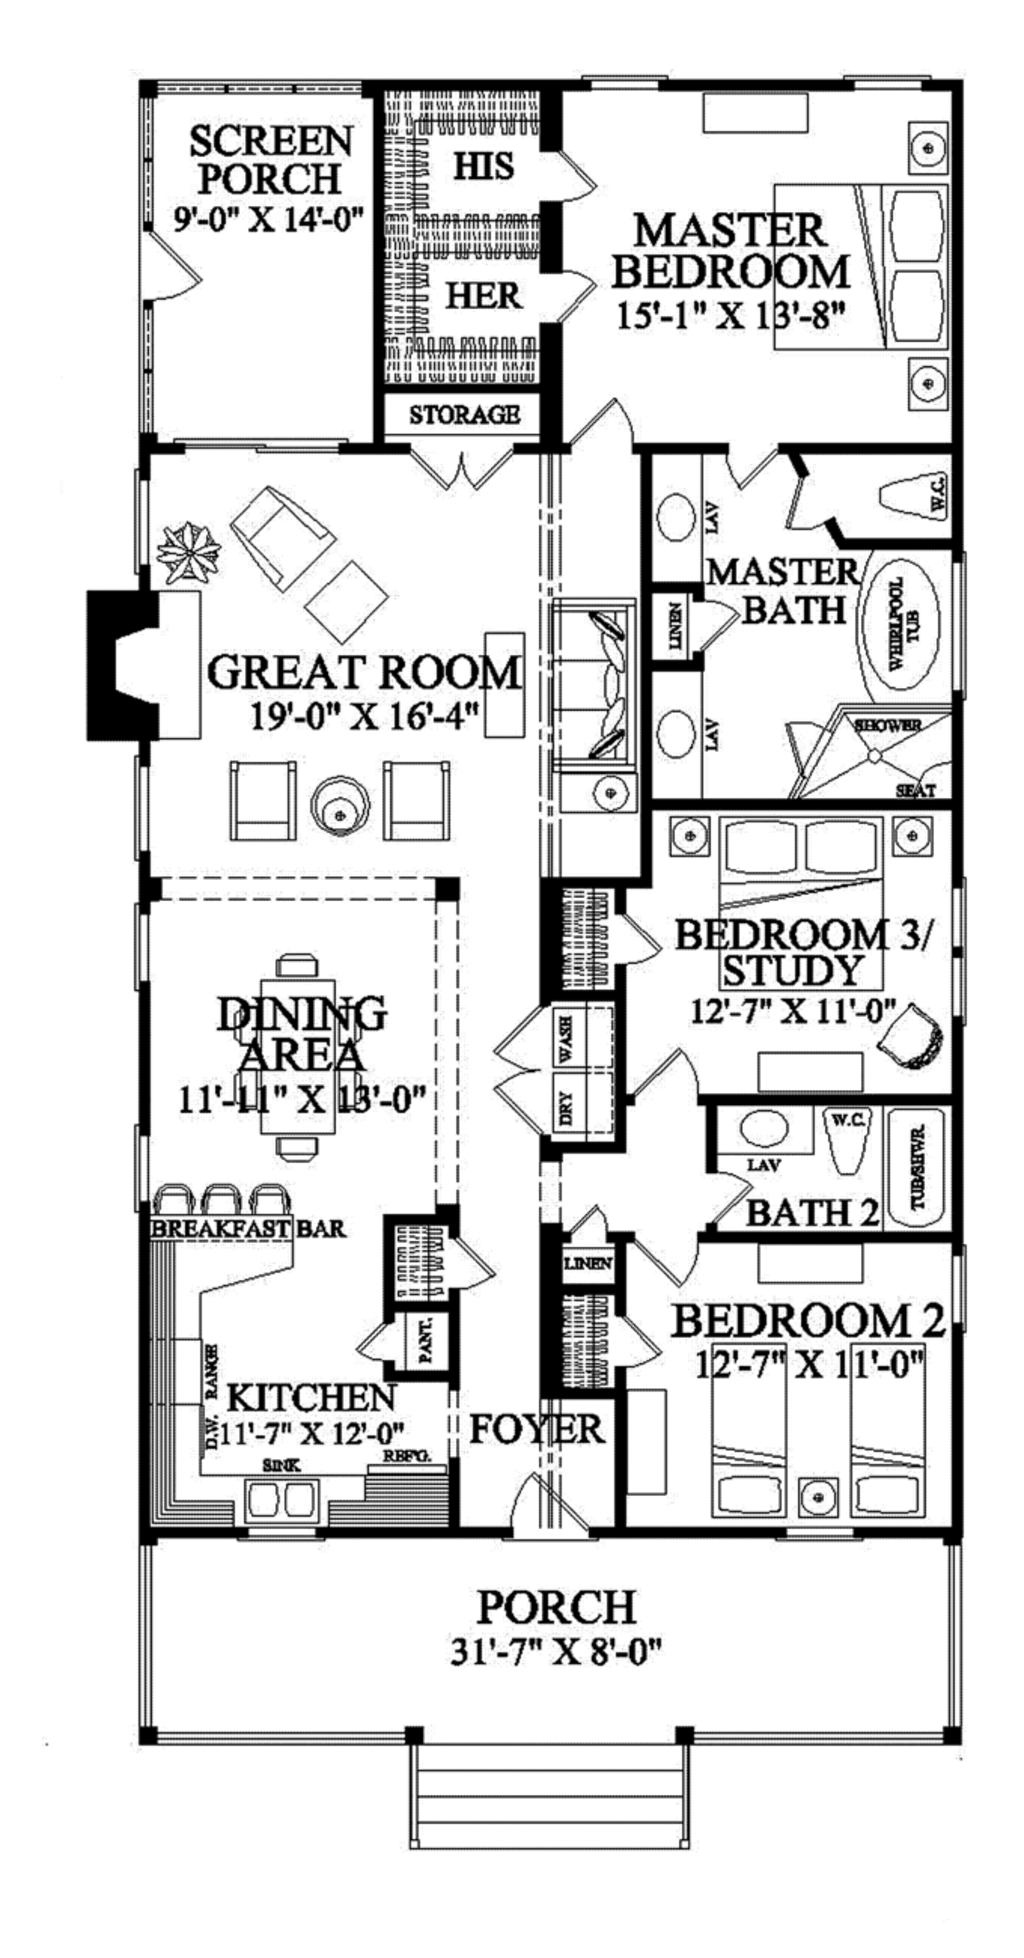 Country style house plan 3 beds 2 baths 1643 sq ft plan for Floorplans com